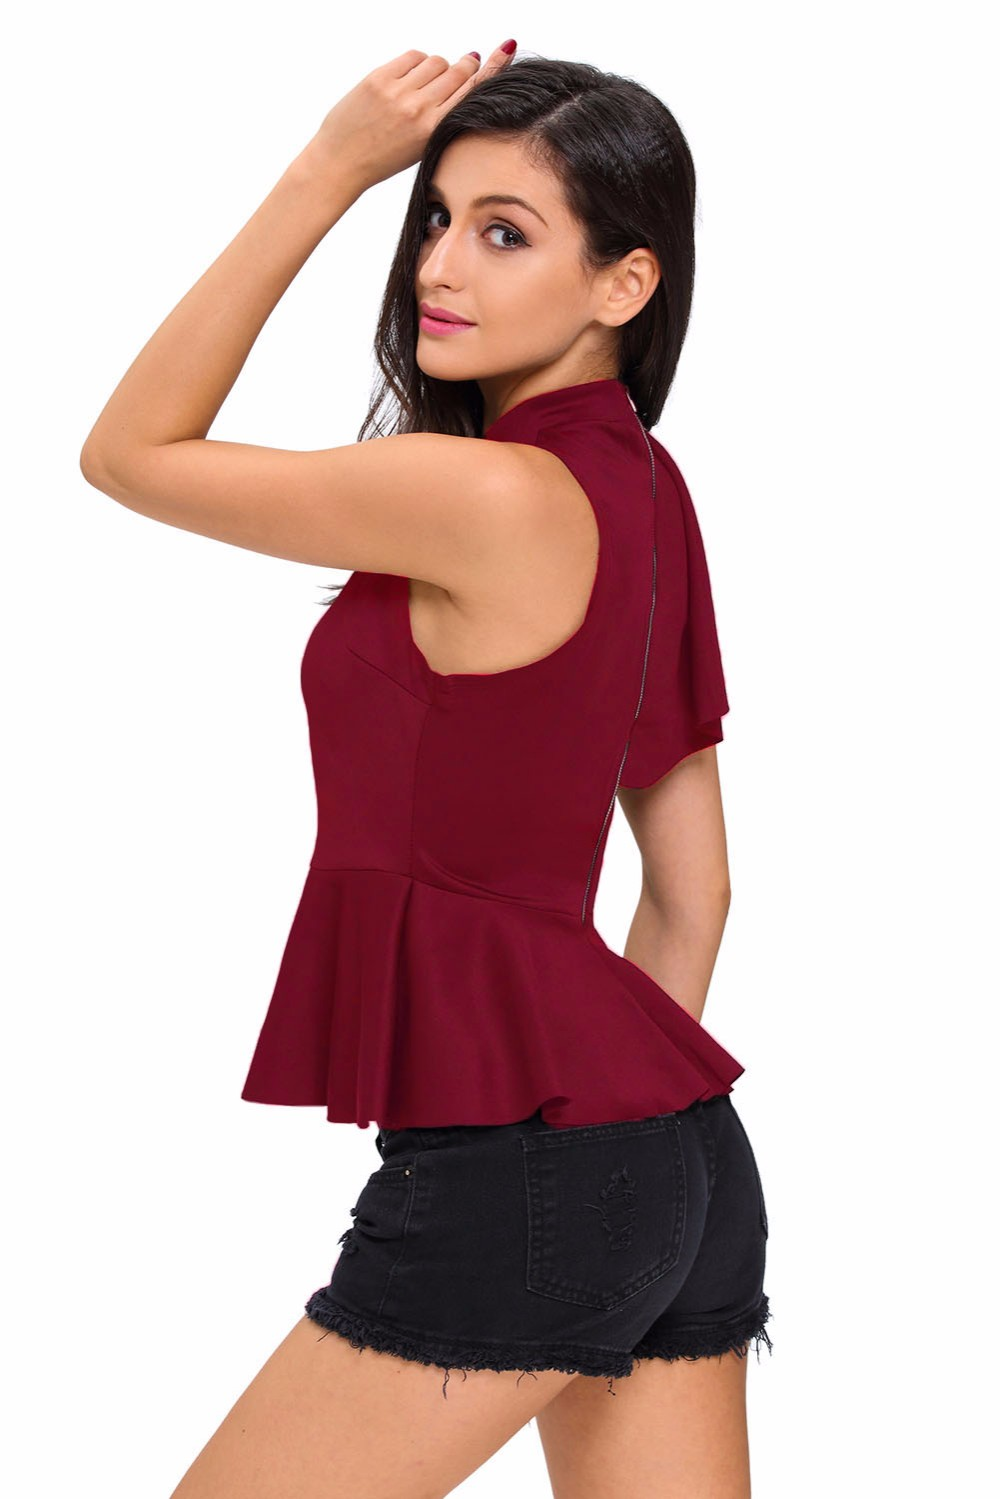 Wine-Asymmetric-Ruffle-Side-Peplum-Top-LC25845-3-4